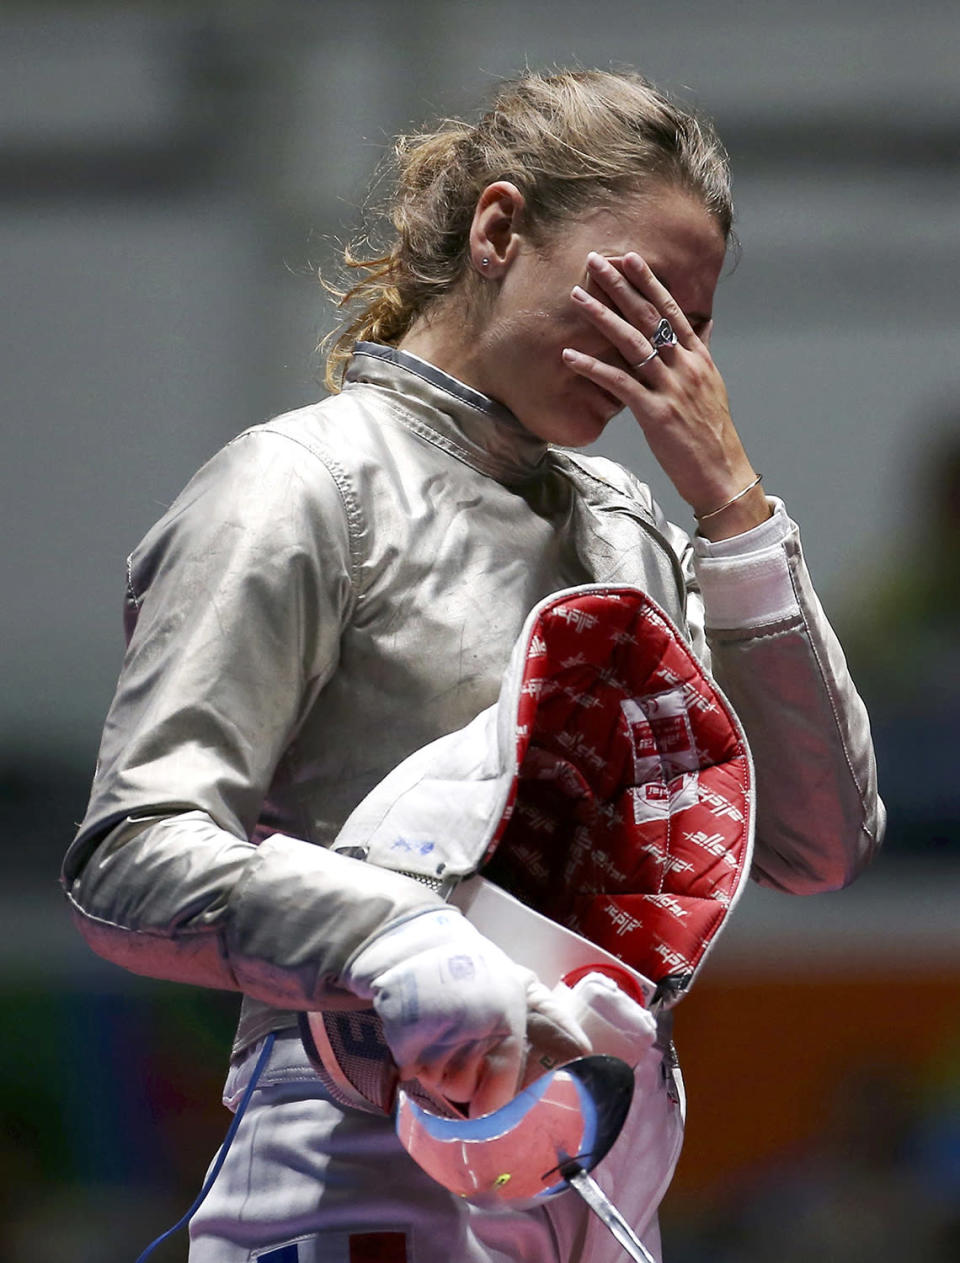 <p>Manon Brunet of France reacts after losing the women's sabre individual bronze medal bout on August 8, 2016. (REUTERS/Issei Kato) </p>